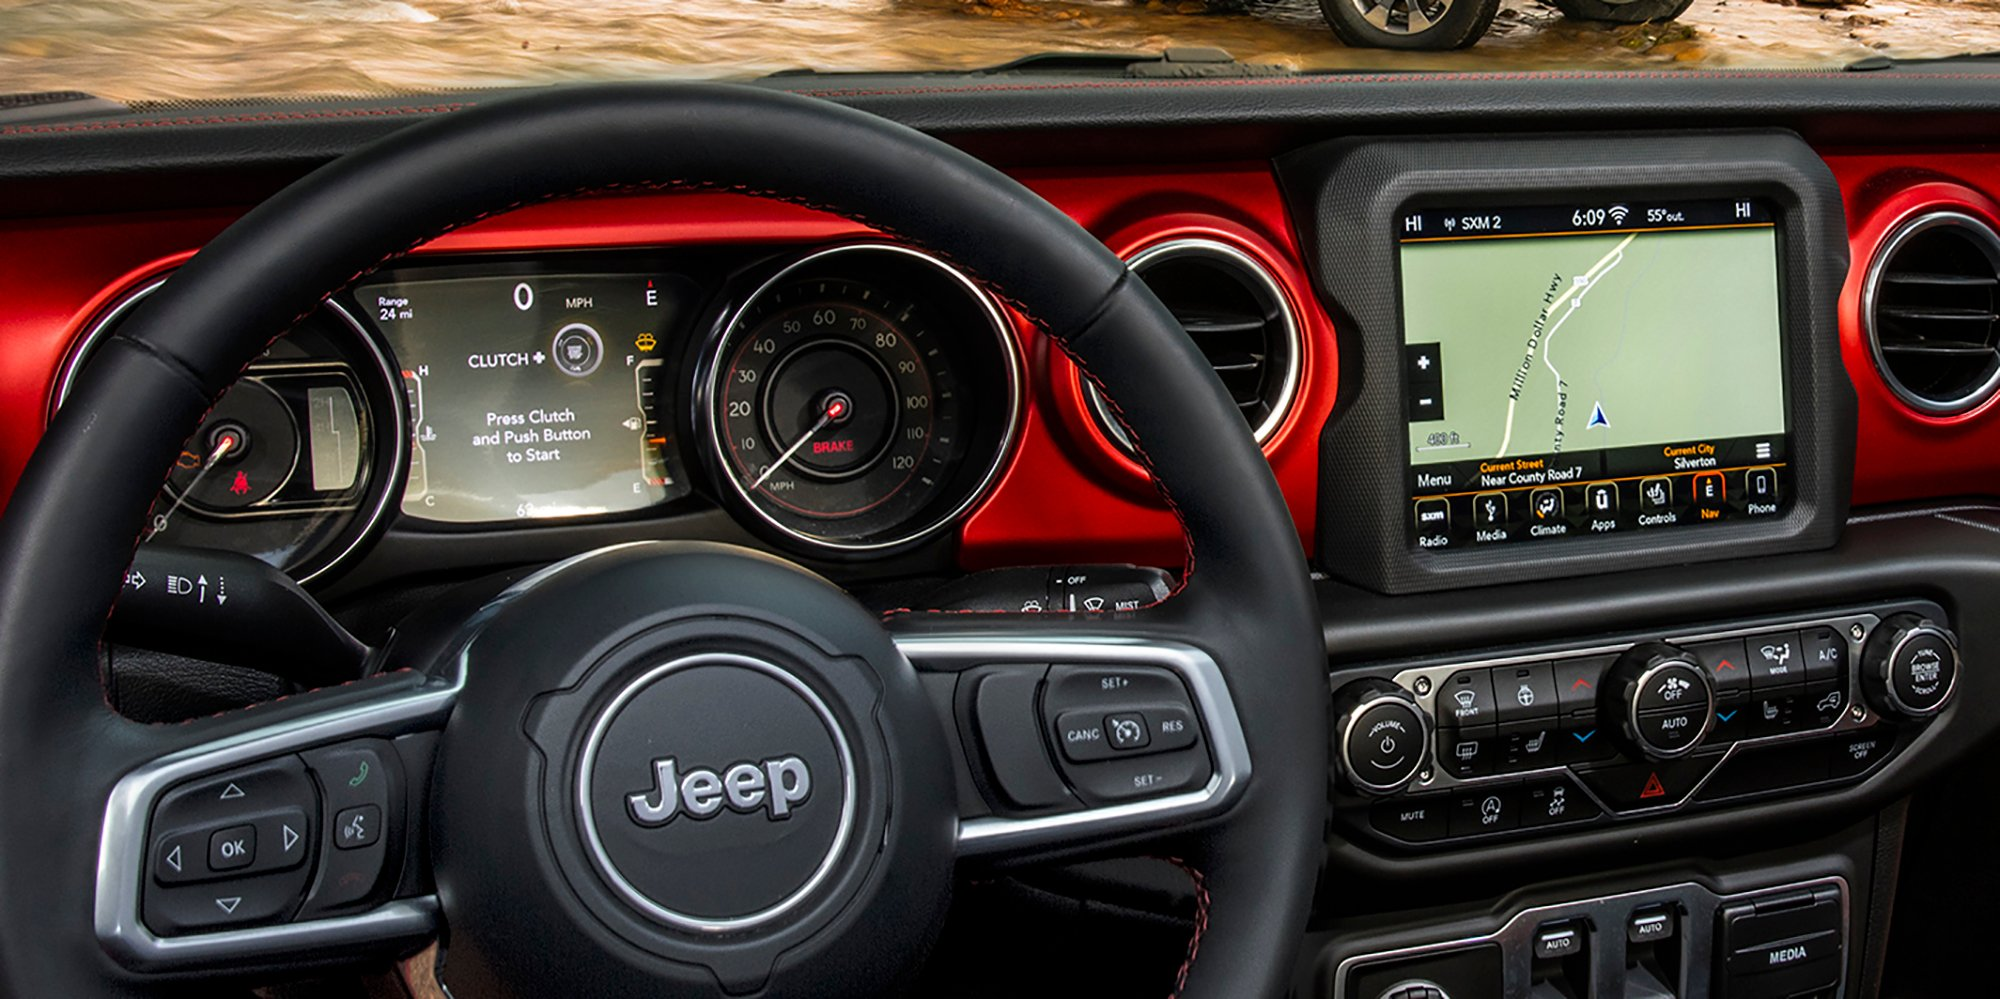 2018 Jeep Wrangler interior revealed - photos | CarAdvice